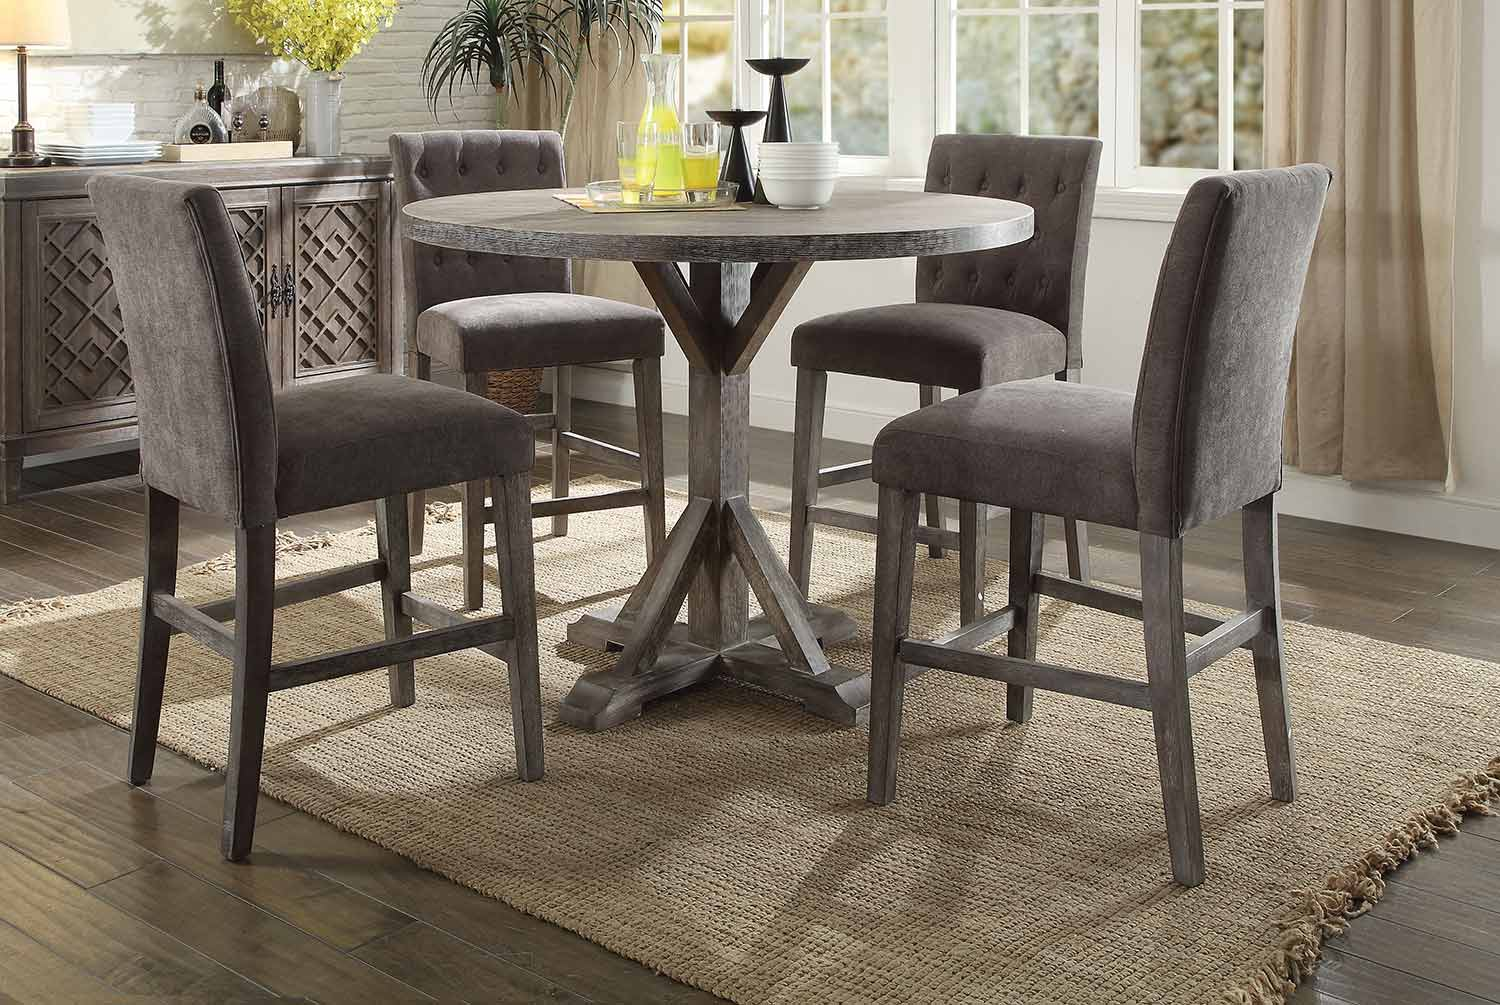 Acme Carmelina Counter Height Dining Set - Weathered Gray Oak